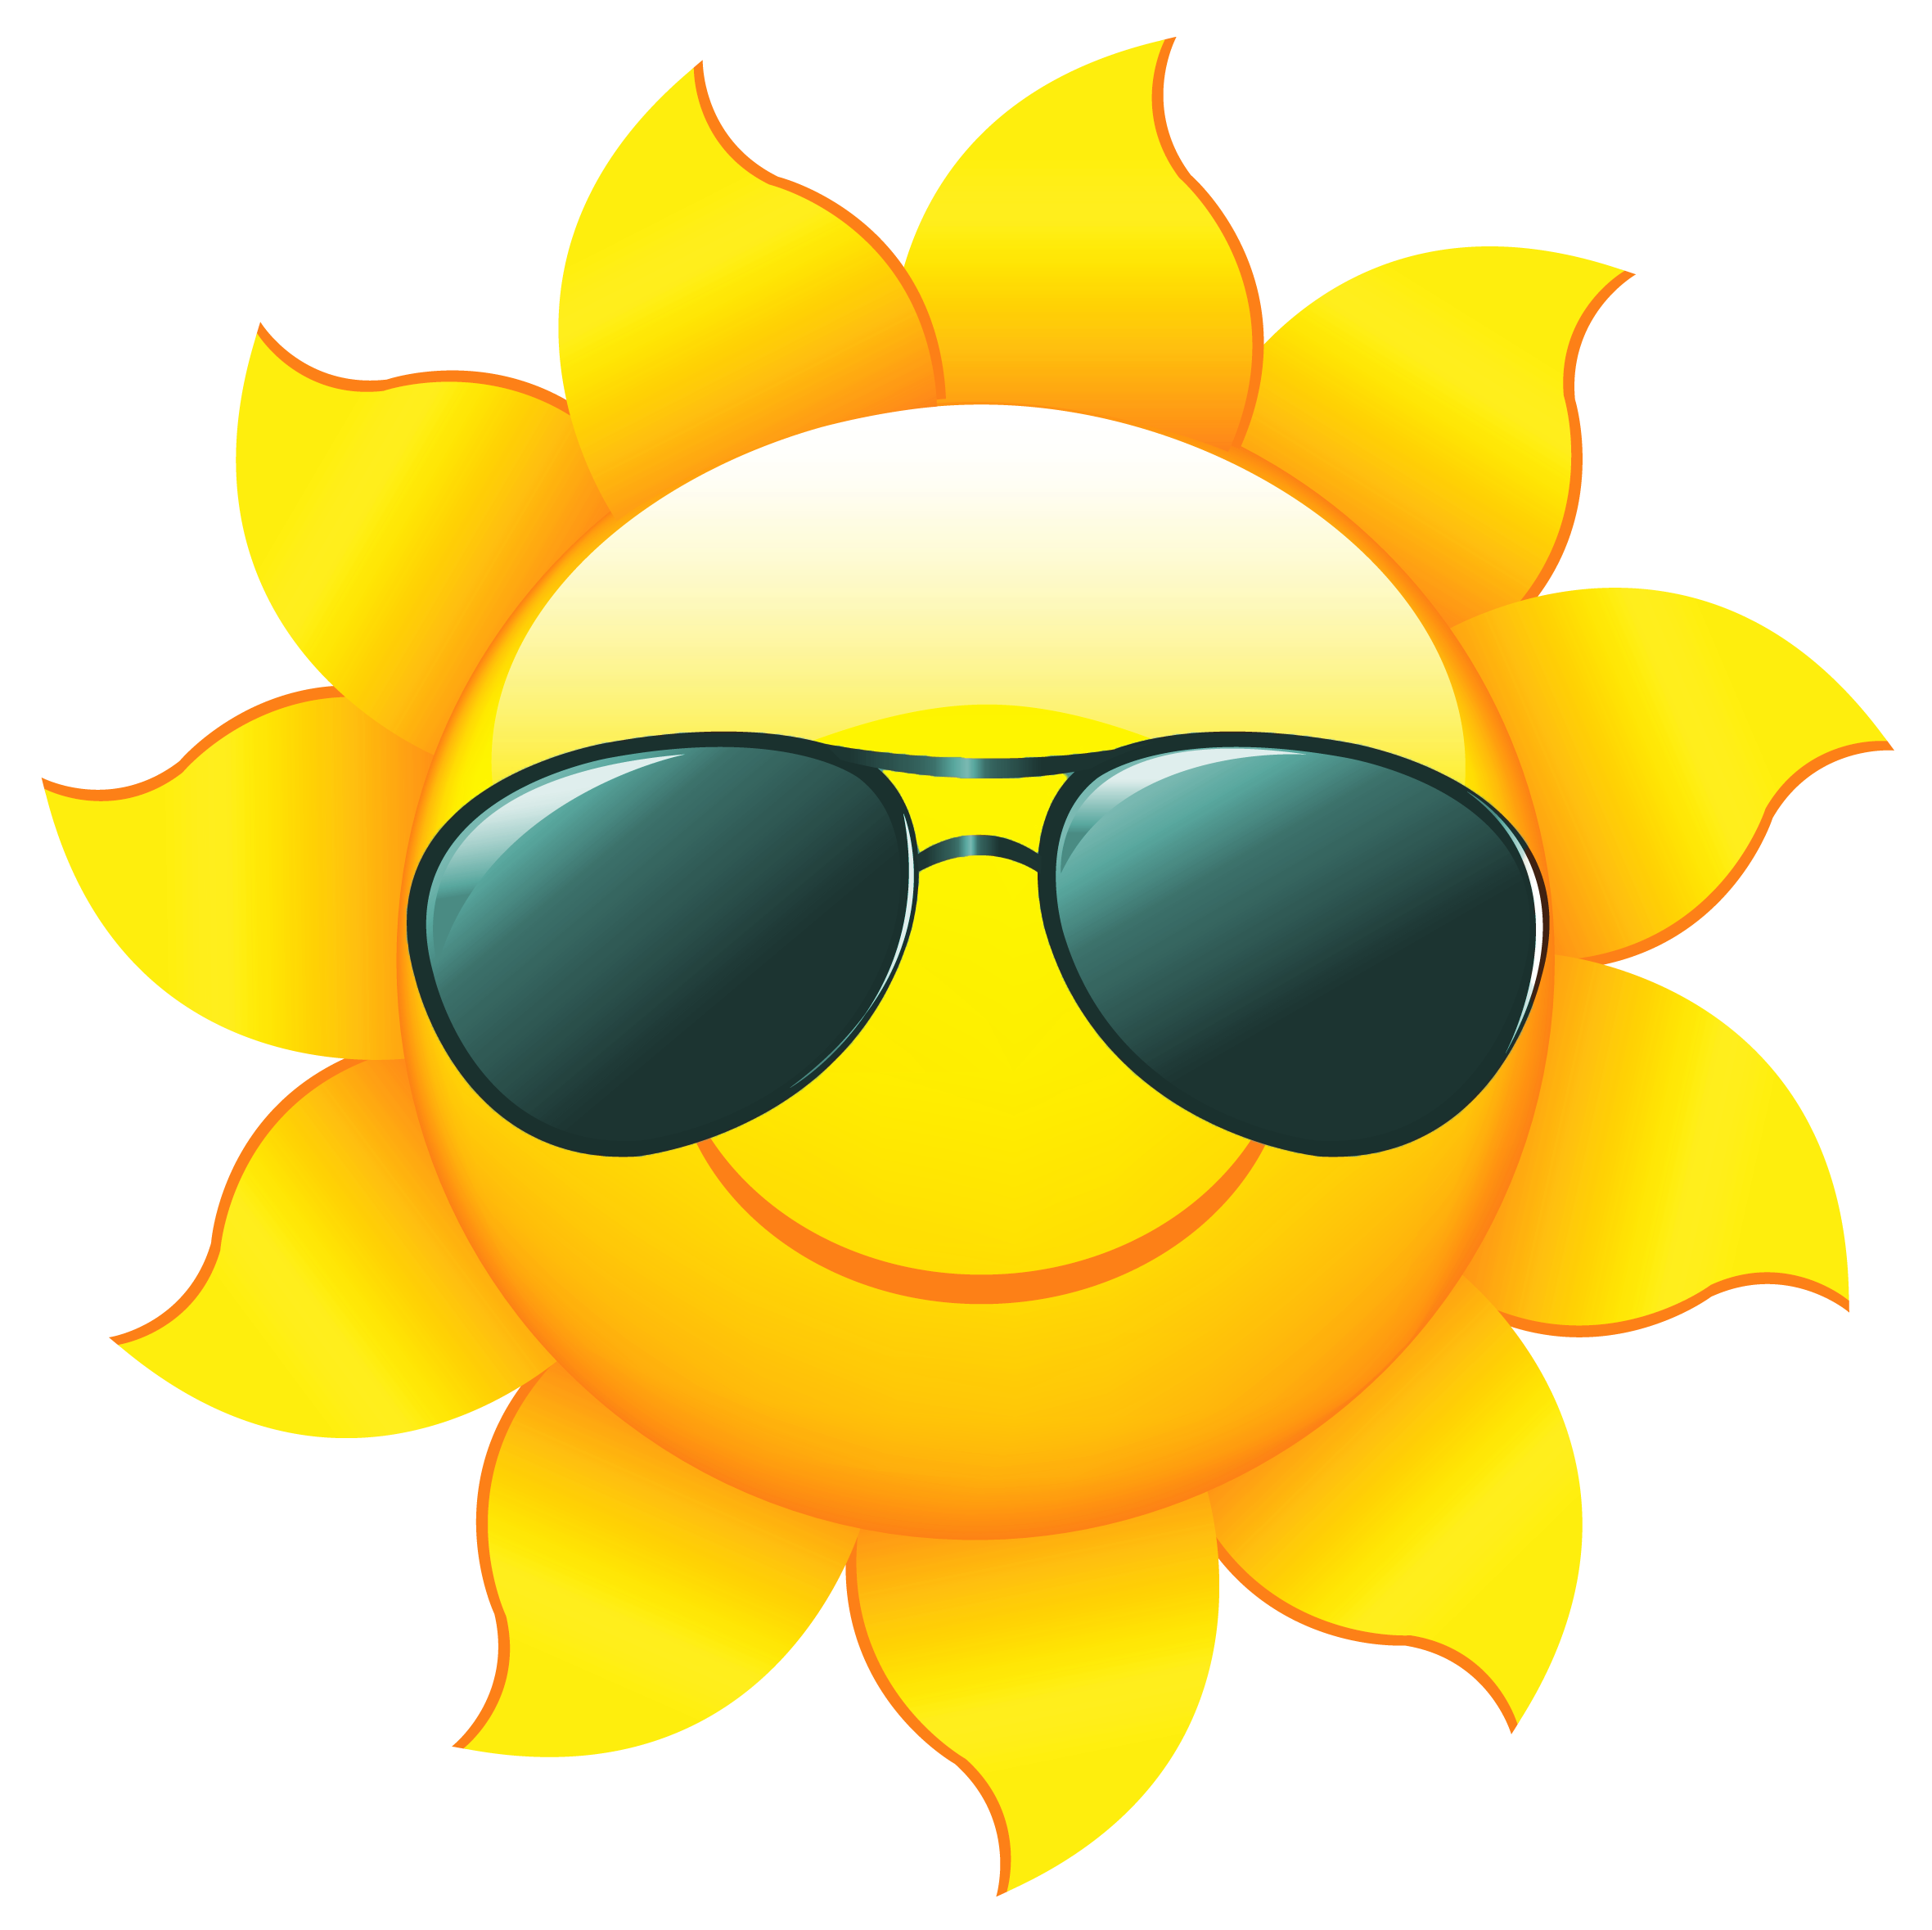 Sun reading clipart jpg black and white download Community Events Calendar 6.30-7.6.2018 - Town of Bedford jpg black and white download